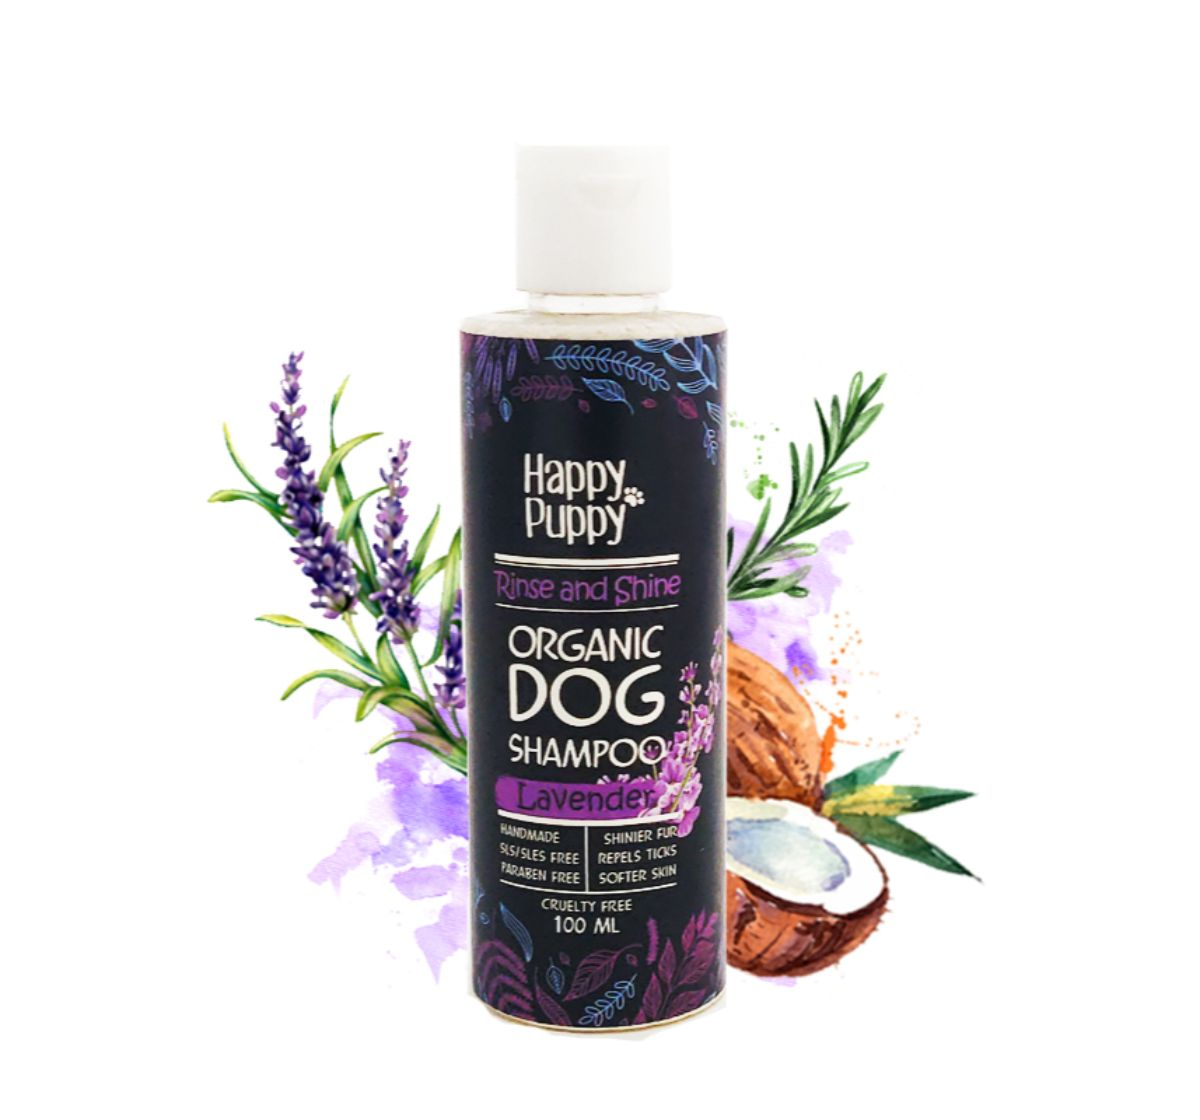 Happy Puppy Organics Rinse and Shine Shampoo- 100ml